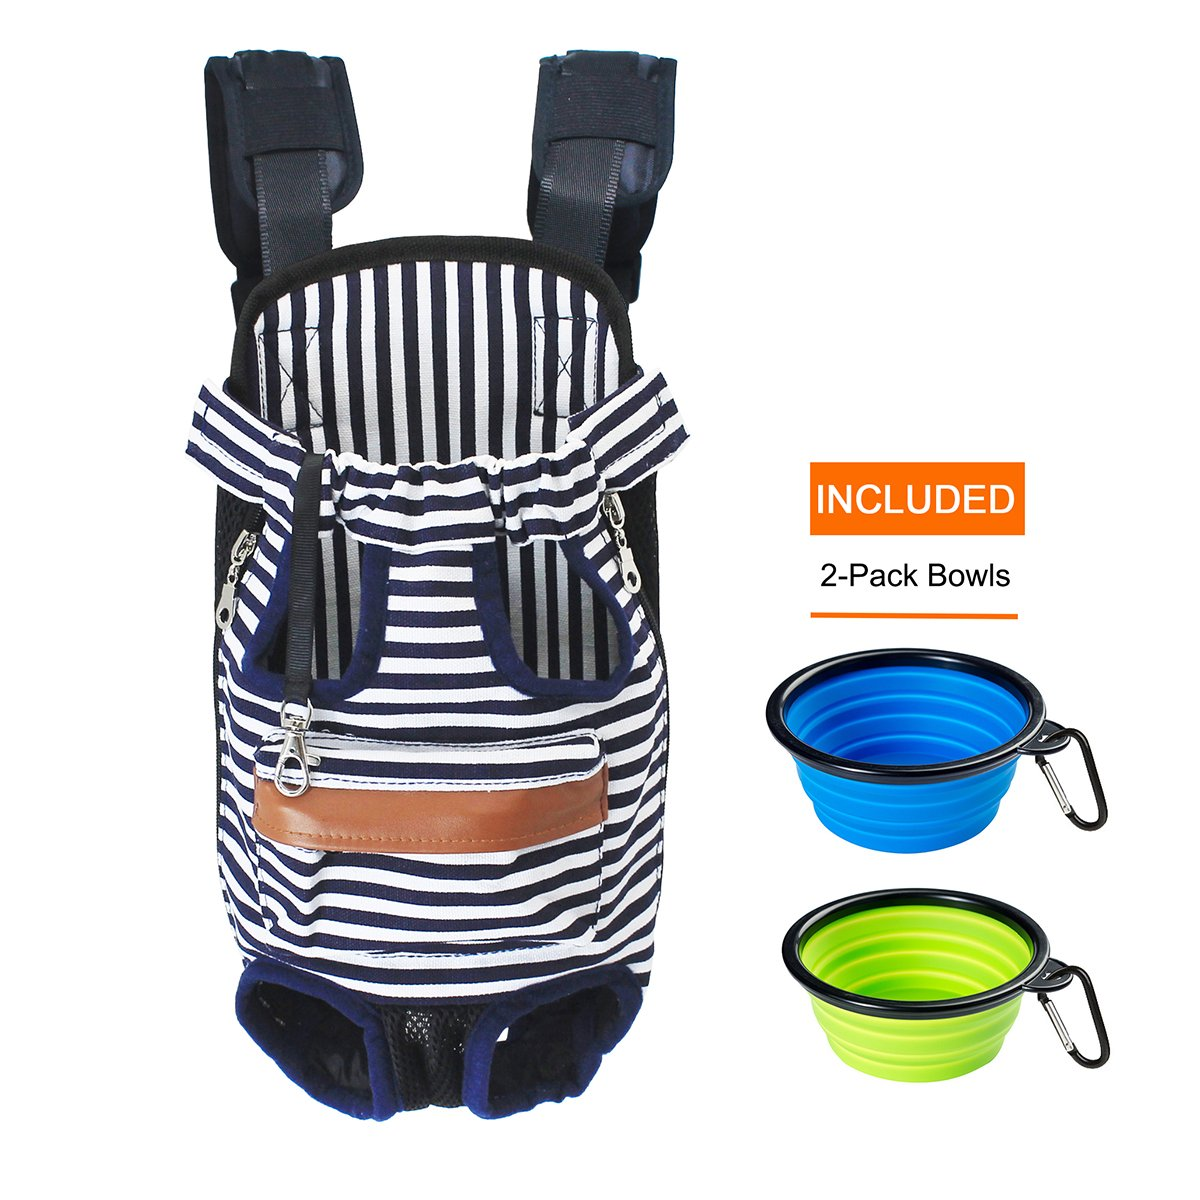 NEFBENLI Canvas Blue+White stripes Legs Out Front Pet Dog Carrier Front Chest Backpack Pet Cat Puppy Tote Holder Bag Sling Outdoor Rucksack,Included 2-Pack Collapsible Travel feeding Bowls